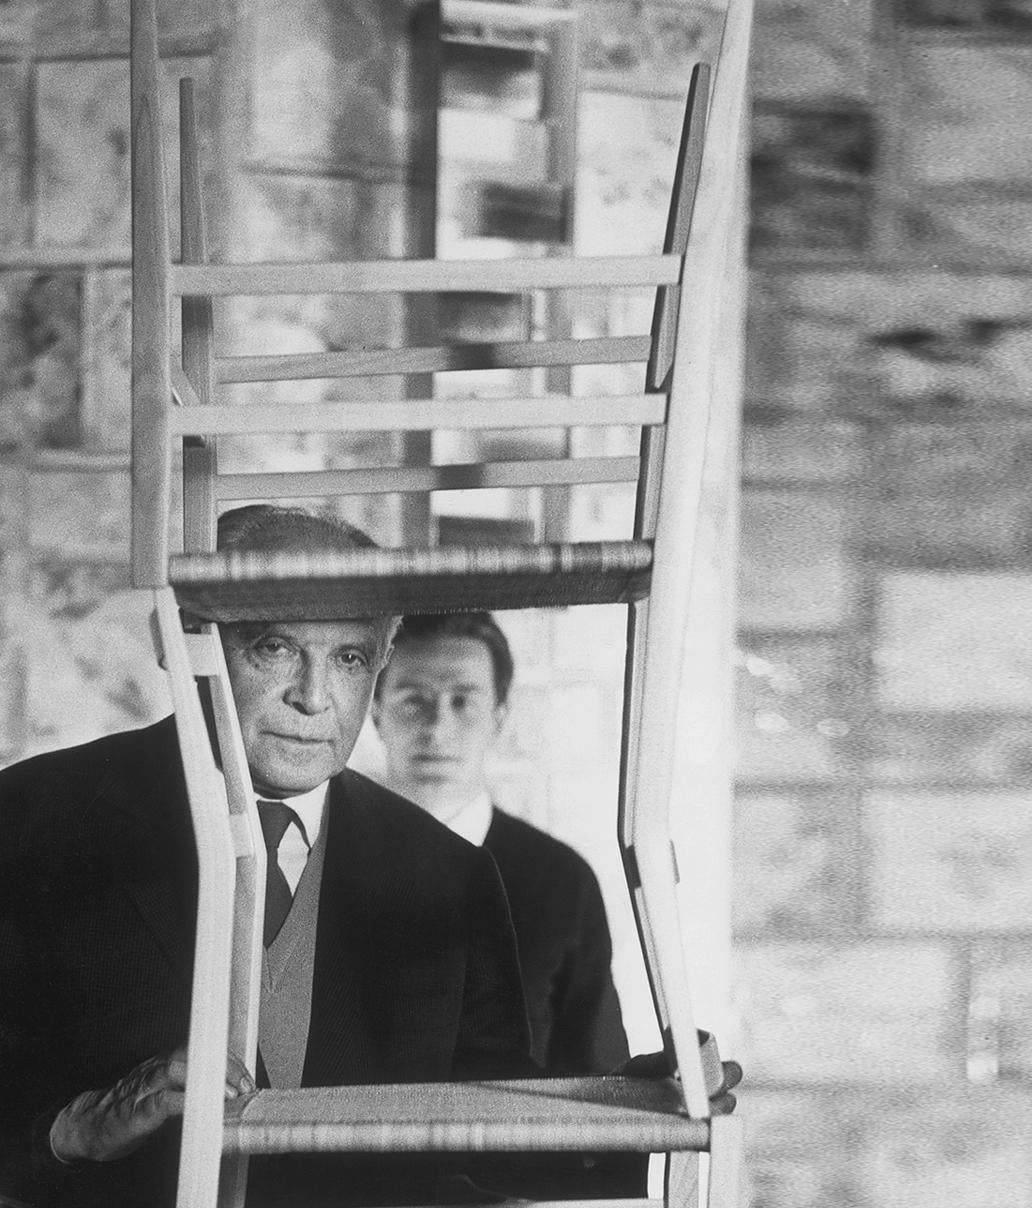 Gio Ponti and son looking through a stack of Superleggera chairs in The Eclectic Life and Work of Gio Ponti for A Collected Man London